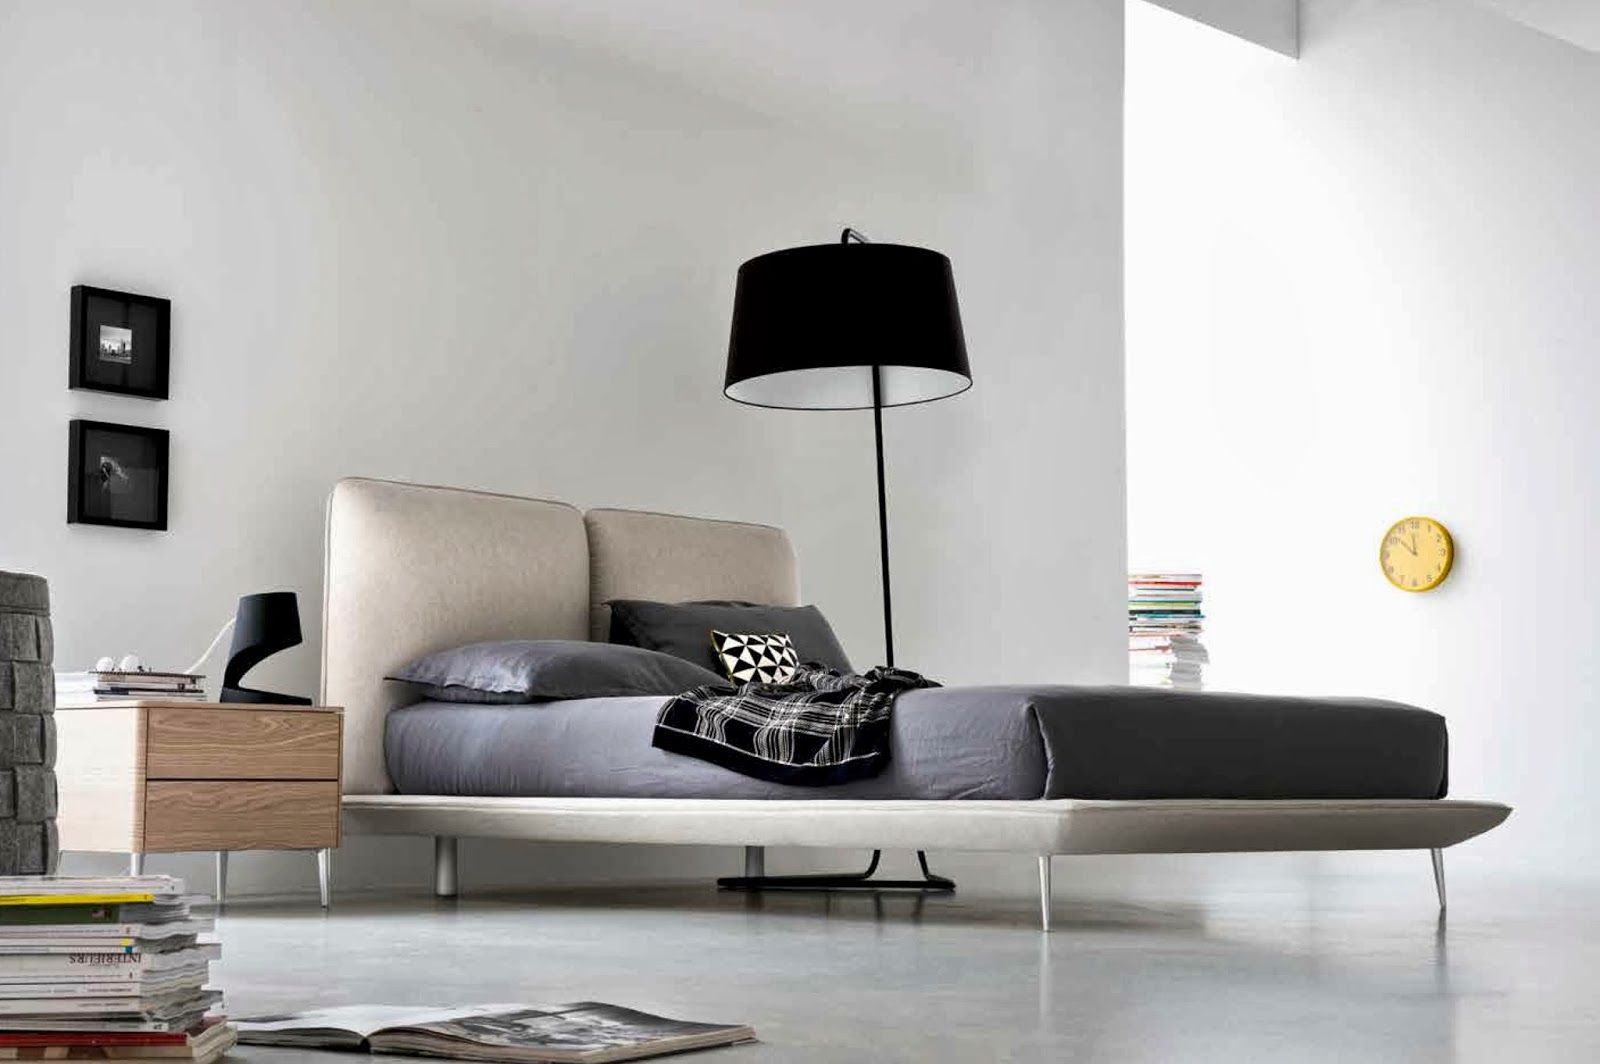 new taylor bed by calligaris made in italy quick ship  weeks  - new taylor bed by calligaris made in italy quick ship  weeks